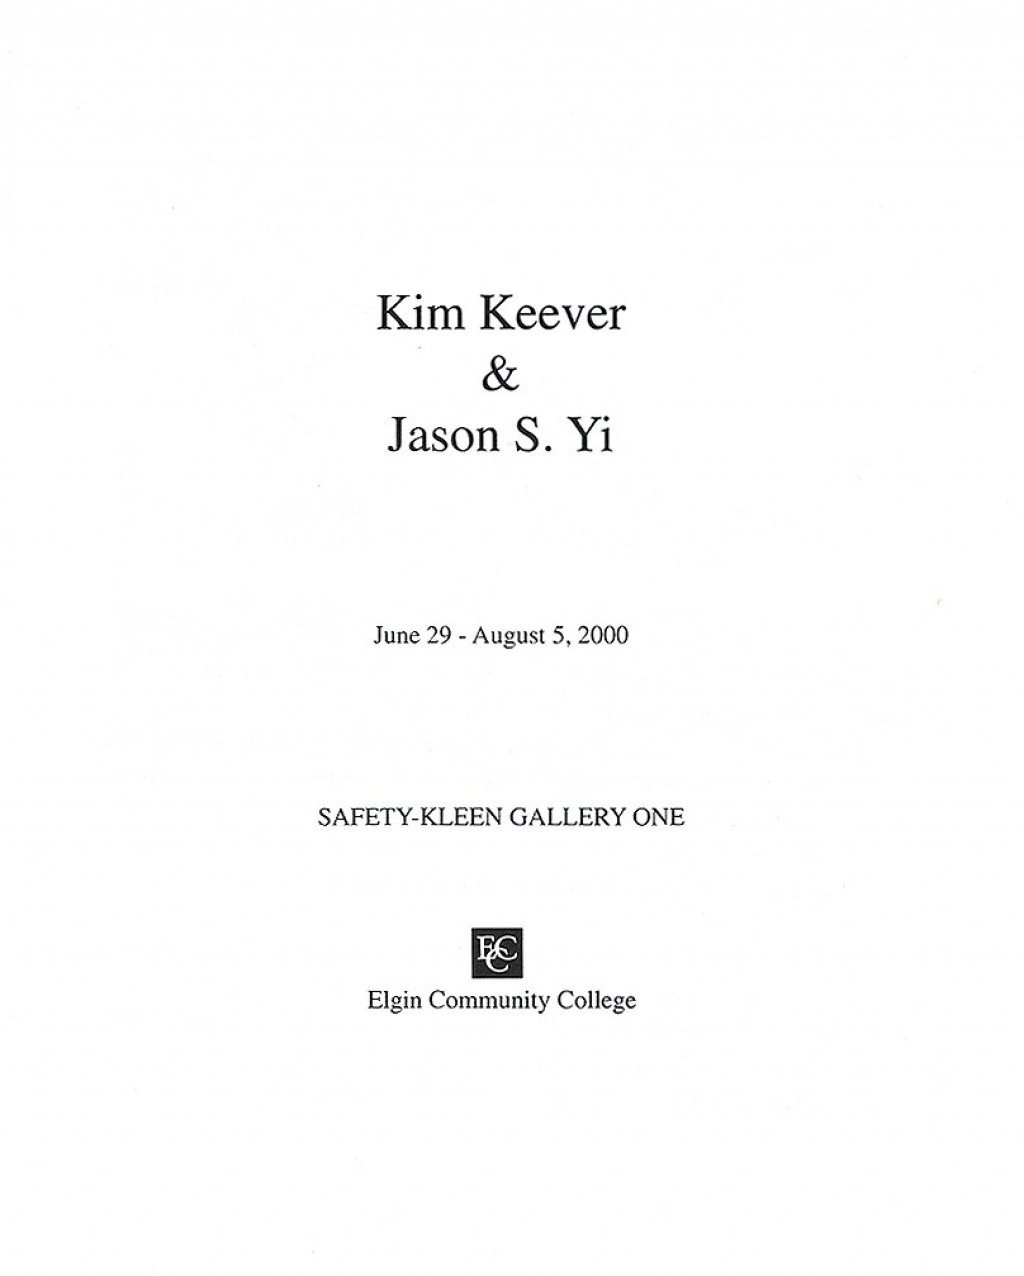 005 Jason Yi Catalog Title Page Essay Example What Is Cover For Awesome A An Does 2 Look Like Two Should I Put On Of Large